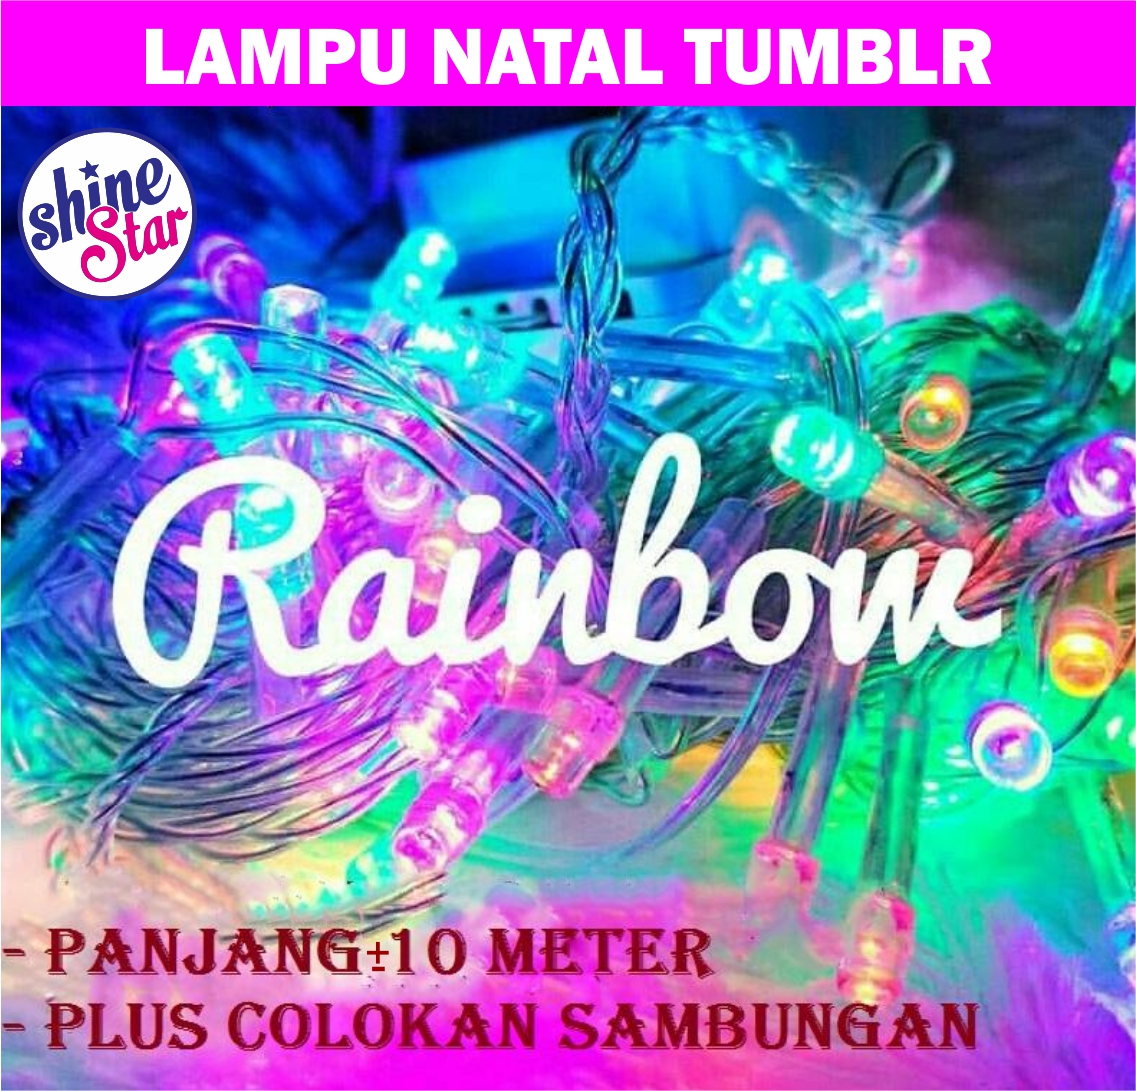 SHINE STAR - Lampu Tumblr Panjang 10 Meter ORIGINAL - 100 Lampu Warna Warni / Lampu Natal Rainbow Lampu Tidur LED RGB Twinkle Light Tumblr Light